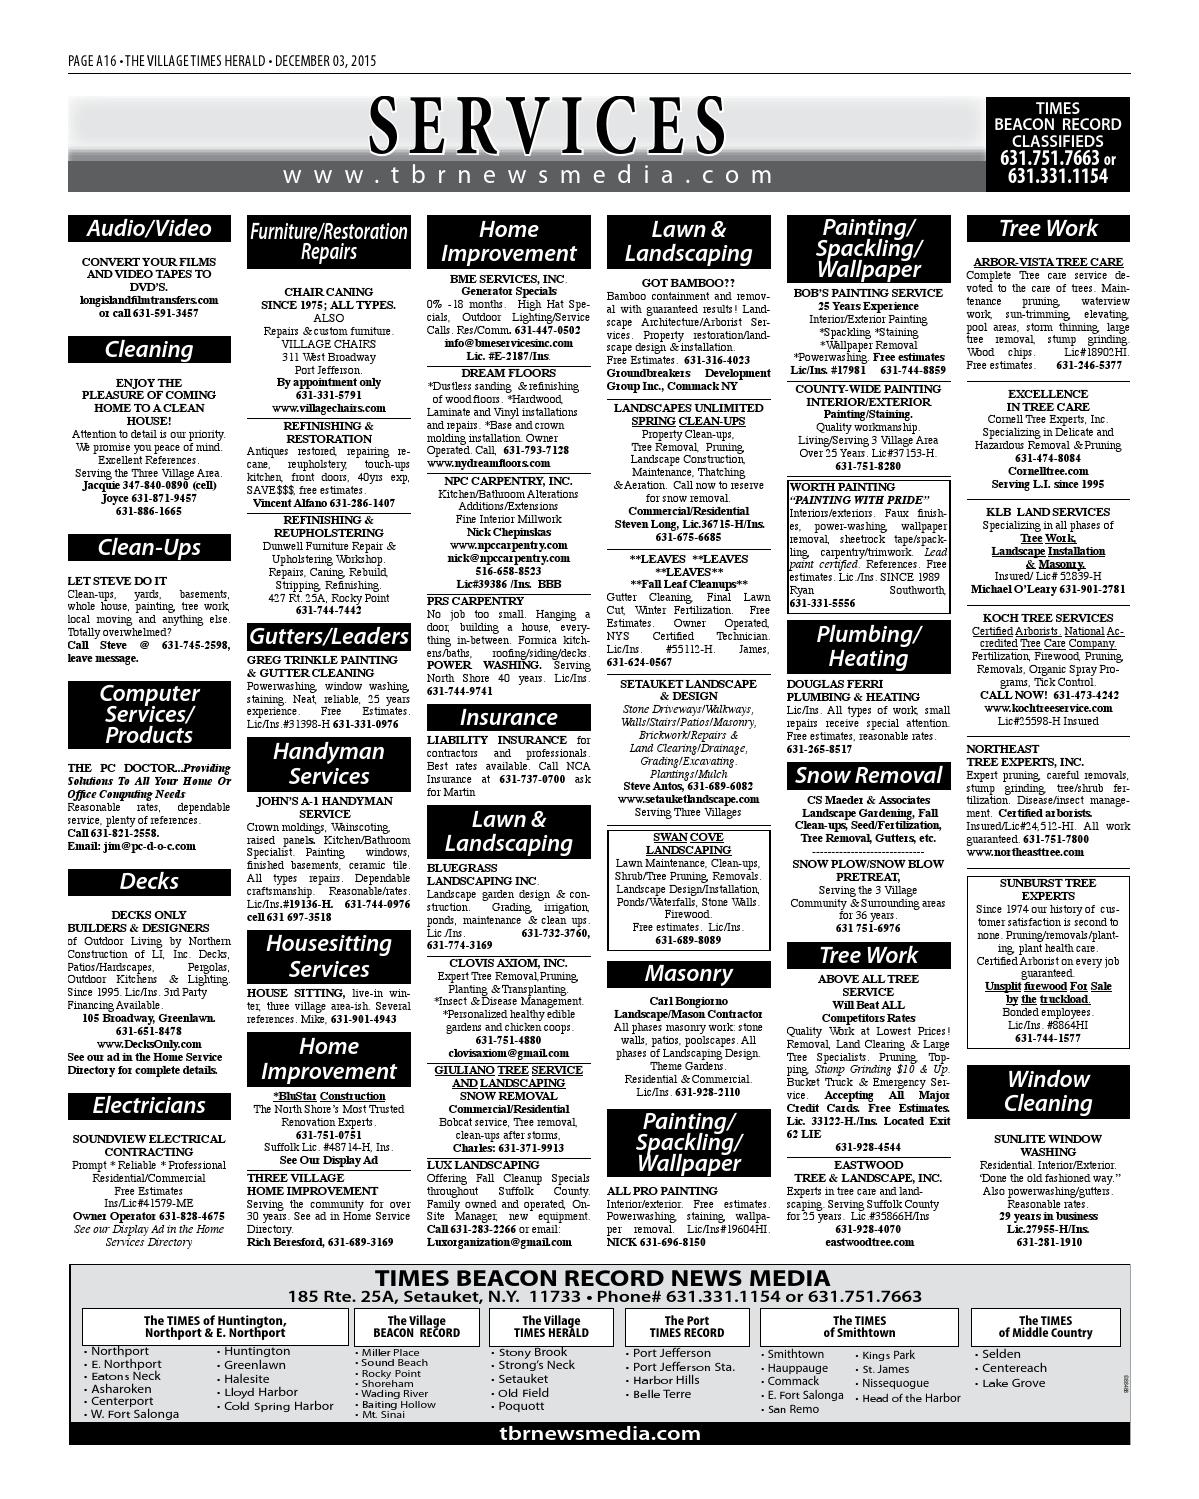 The Village Times Herald - December 3, 2015 by TBR News Media - issuu